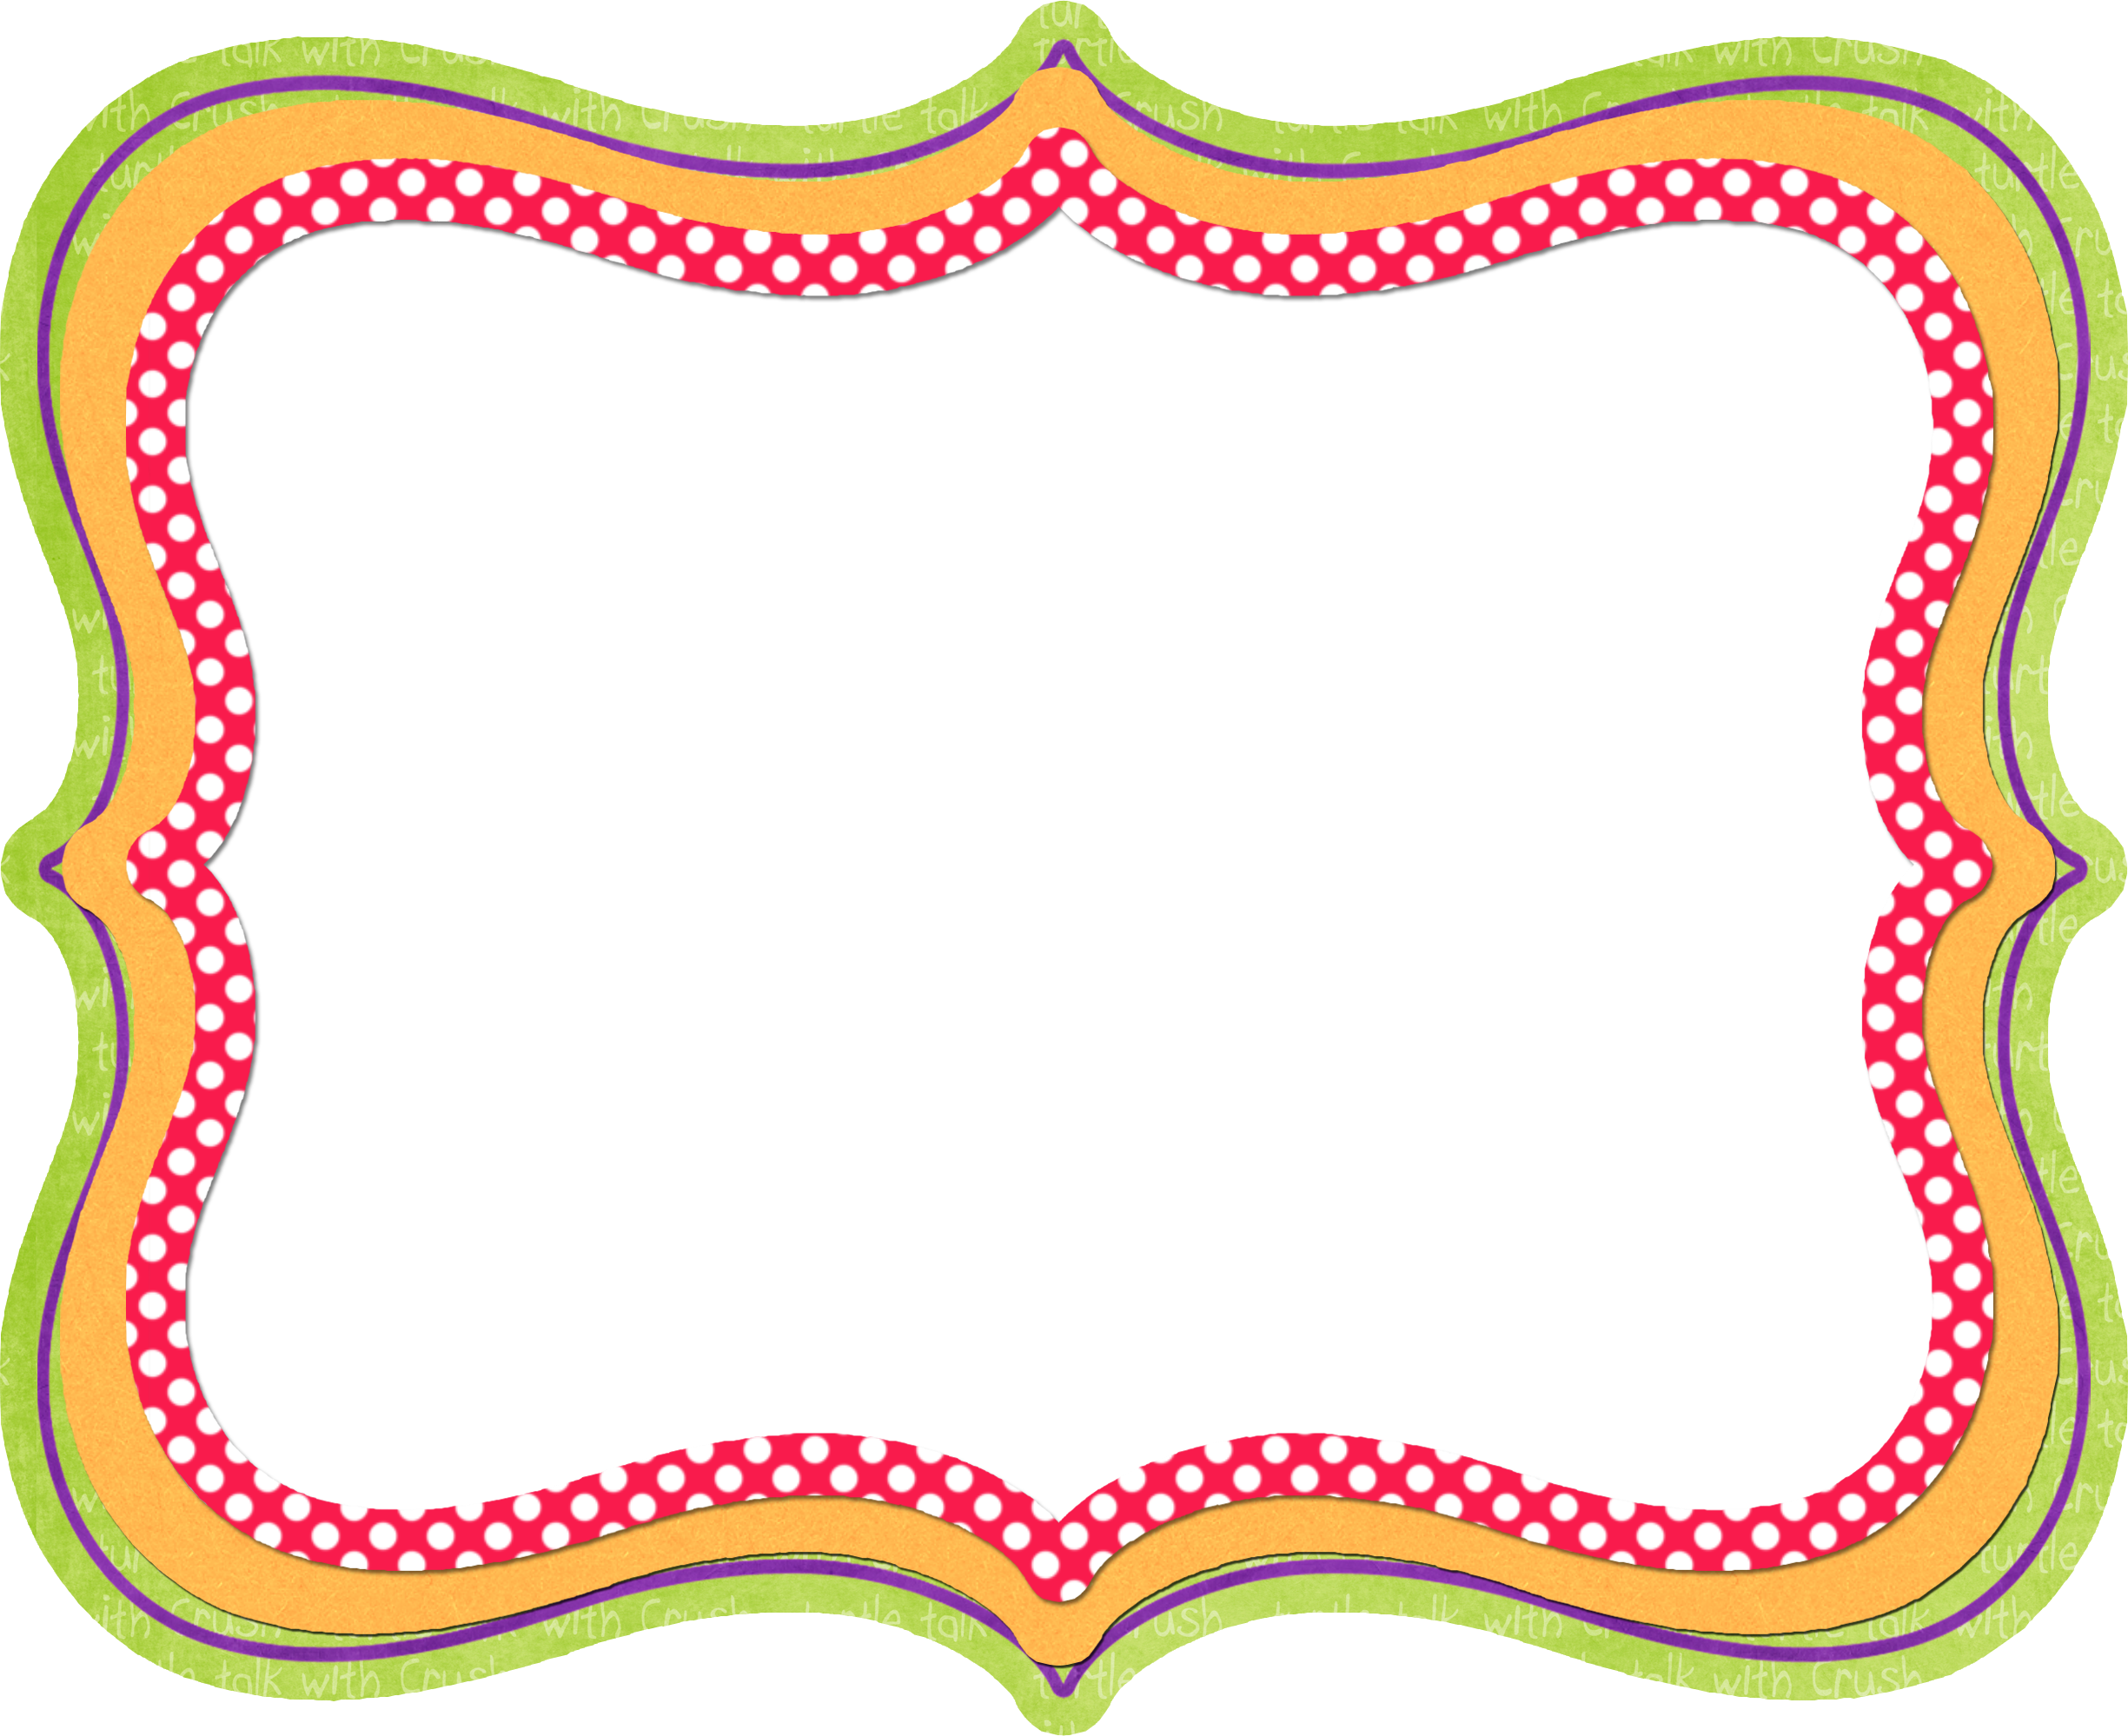 Free school clipart borders banner transparent library Sports Borders | Clipart Panda - Free Clipart Images banner transparent library